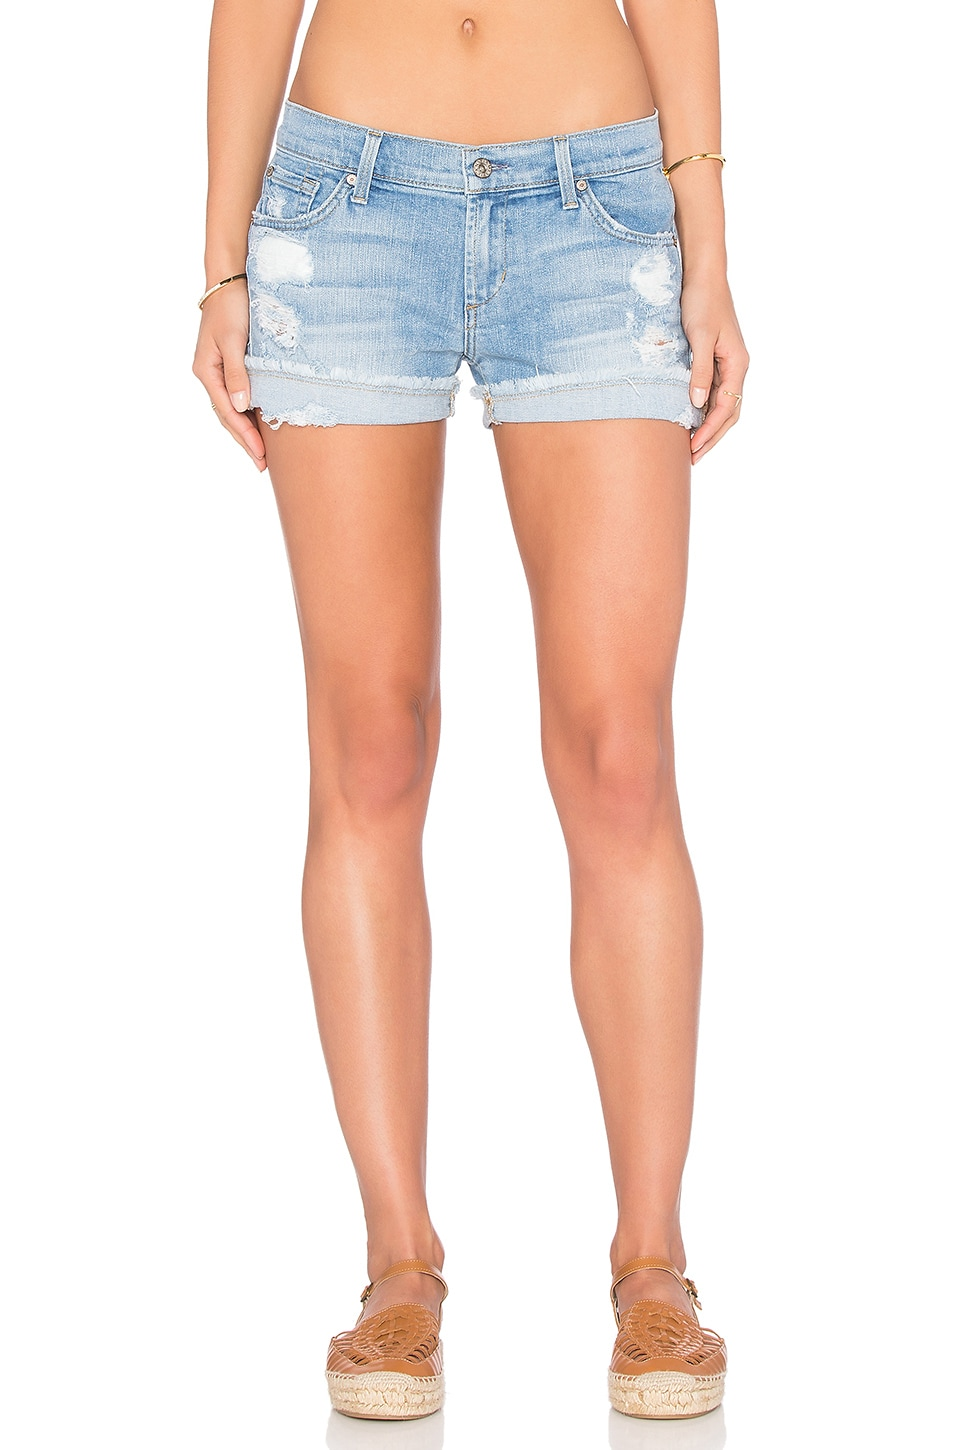 Shorty by James Jeans